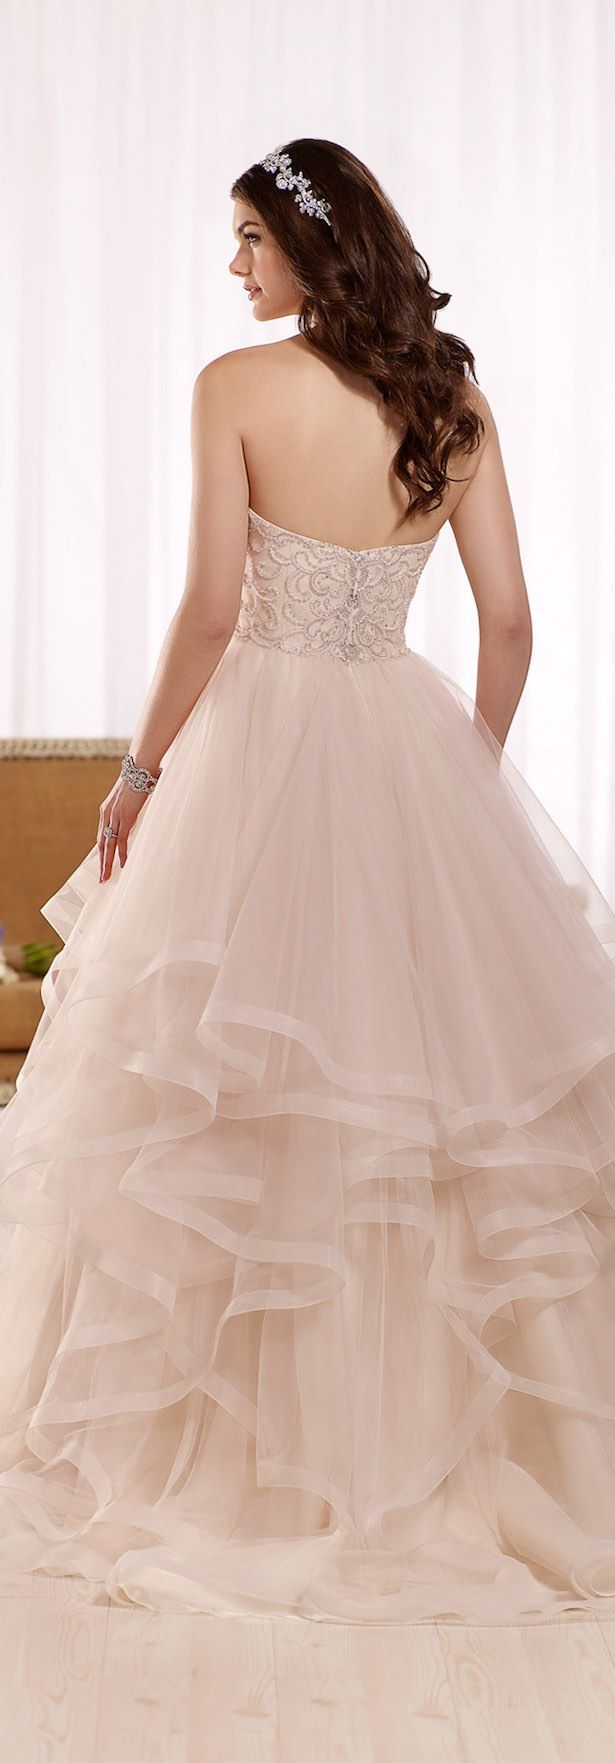 Best wedding dresses for broad shoulders   best Wedding gowns images on Pinterest  Wedding frocks Cute